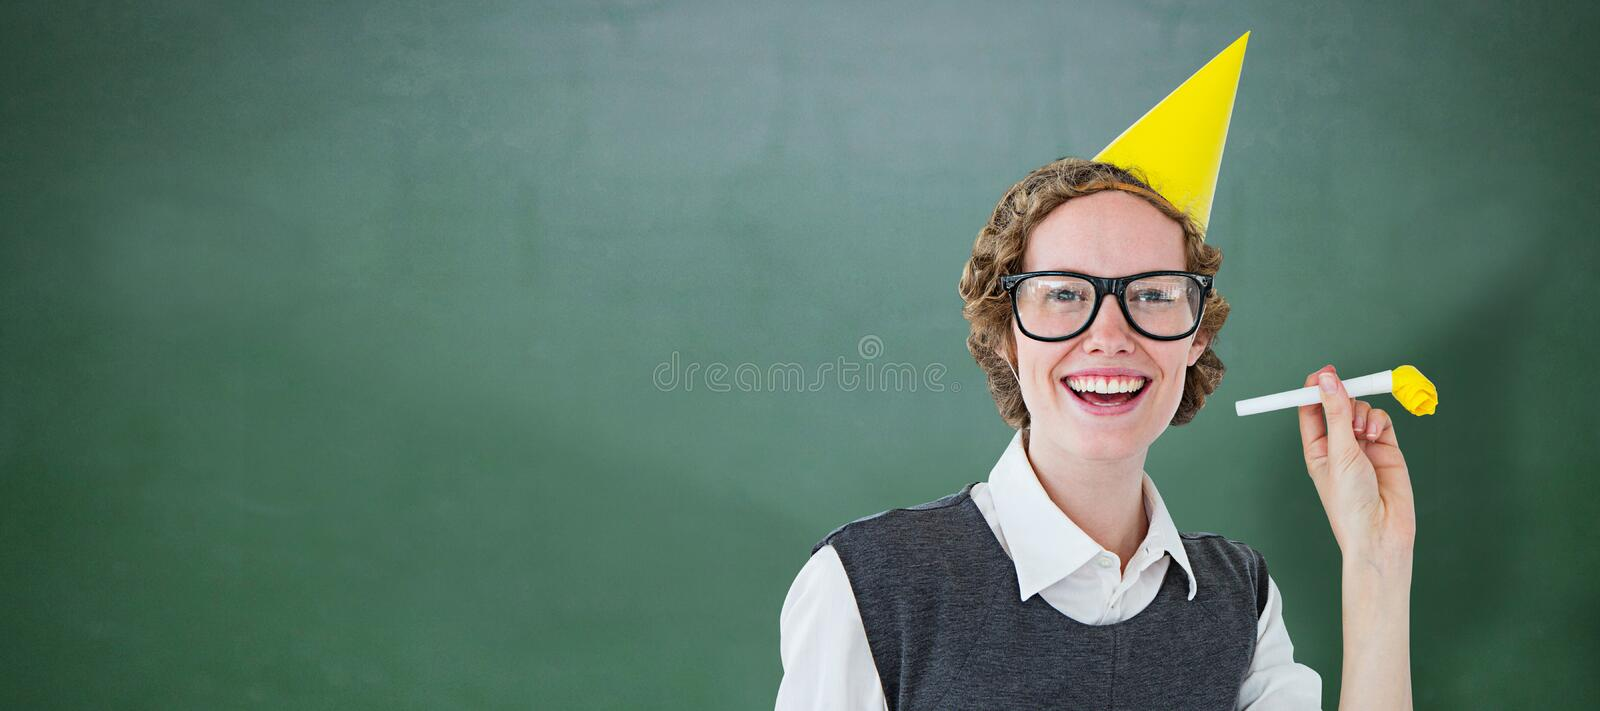 Composite image of geeky hipster in party hat with horn. Geeky hipster in party hat with horn against green chalkboard royalty free stock image